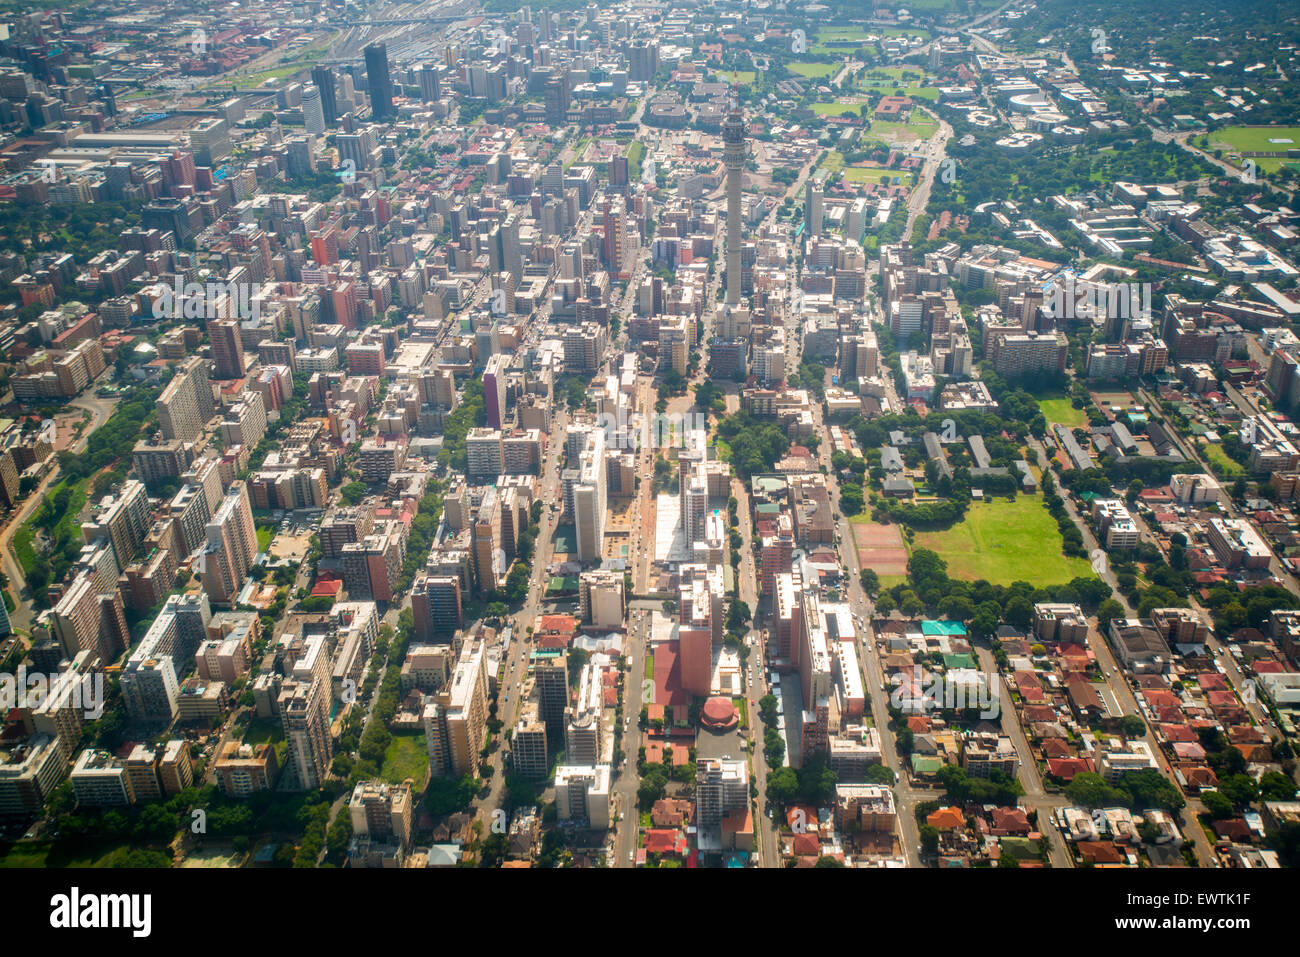 SOUTH AFRICA- Aerial view of Johannesburg Stock Photo